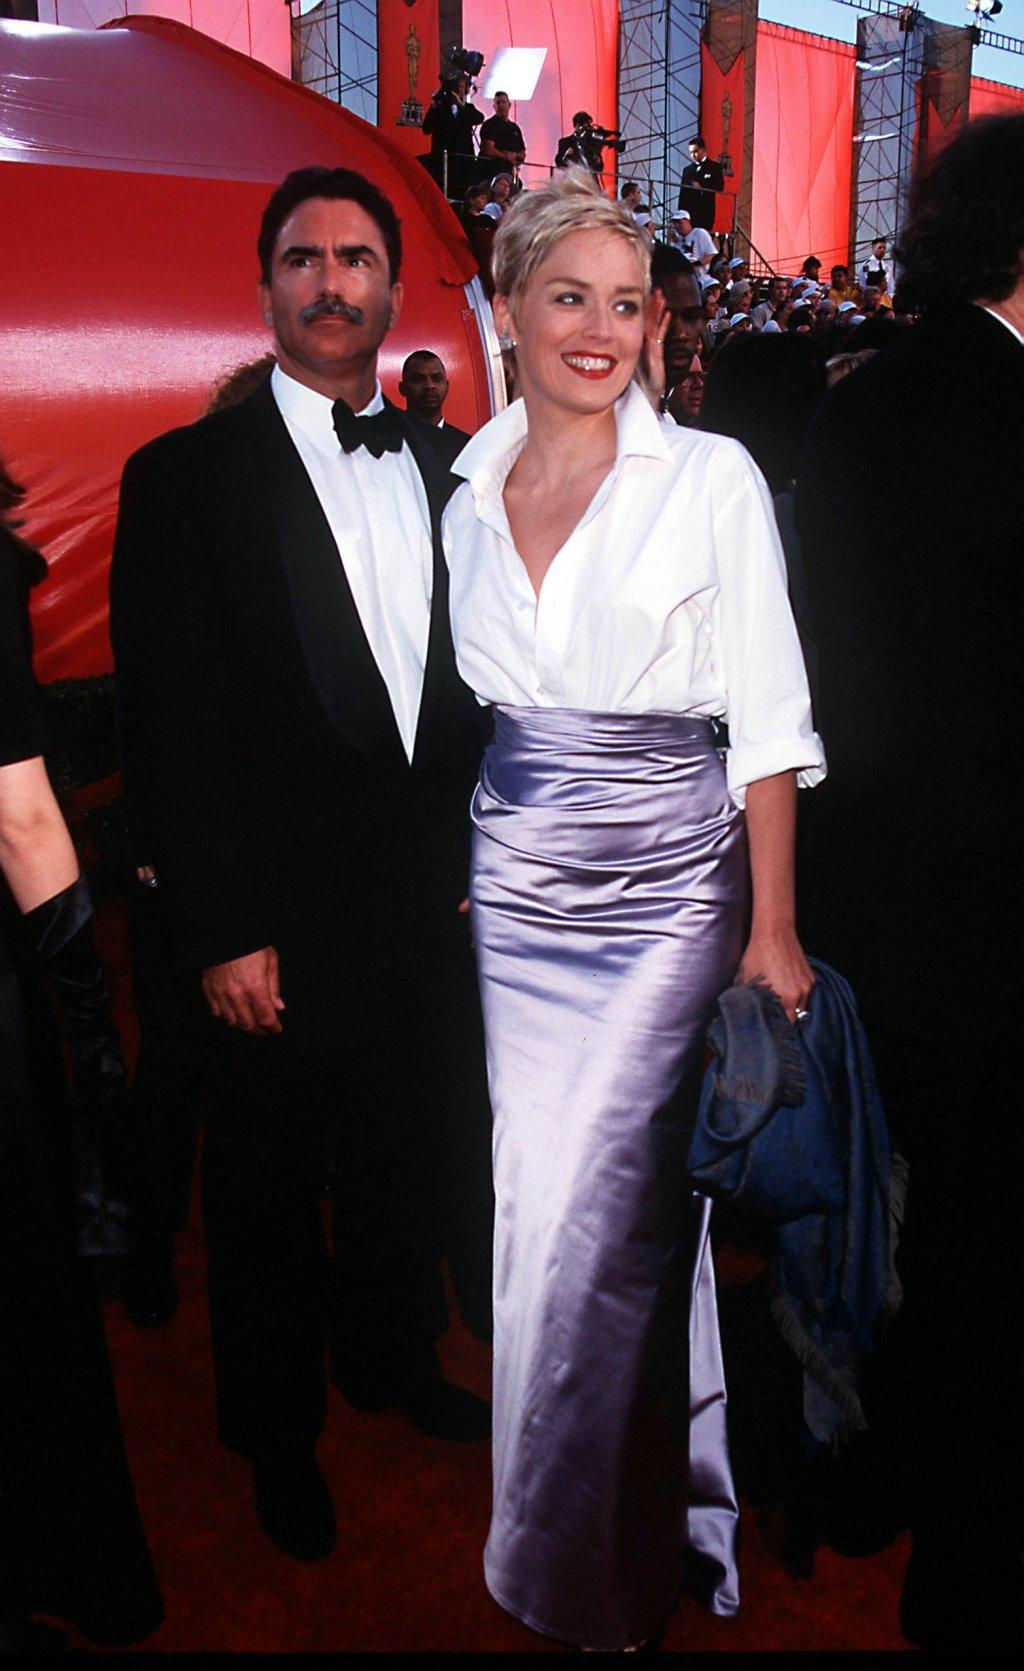 MONDAY 03/23/98  LOS ANGELES, CALIFORNIA 70th ANNUAL ACADEMY AWARDS AT THE SHRINE AUDITORIUM ARRIVALS: SHARON STONE AND HUSBAND PHOTO:  Evan Agostini/Getty Images